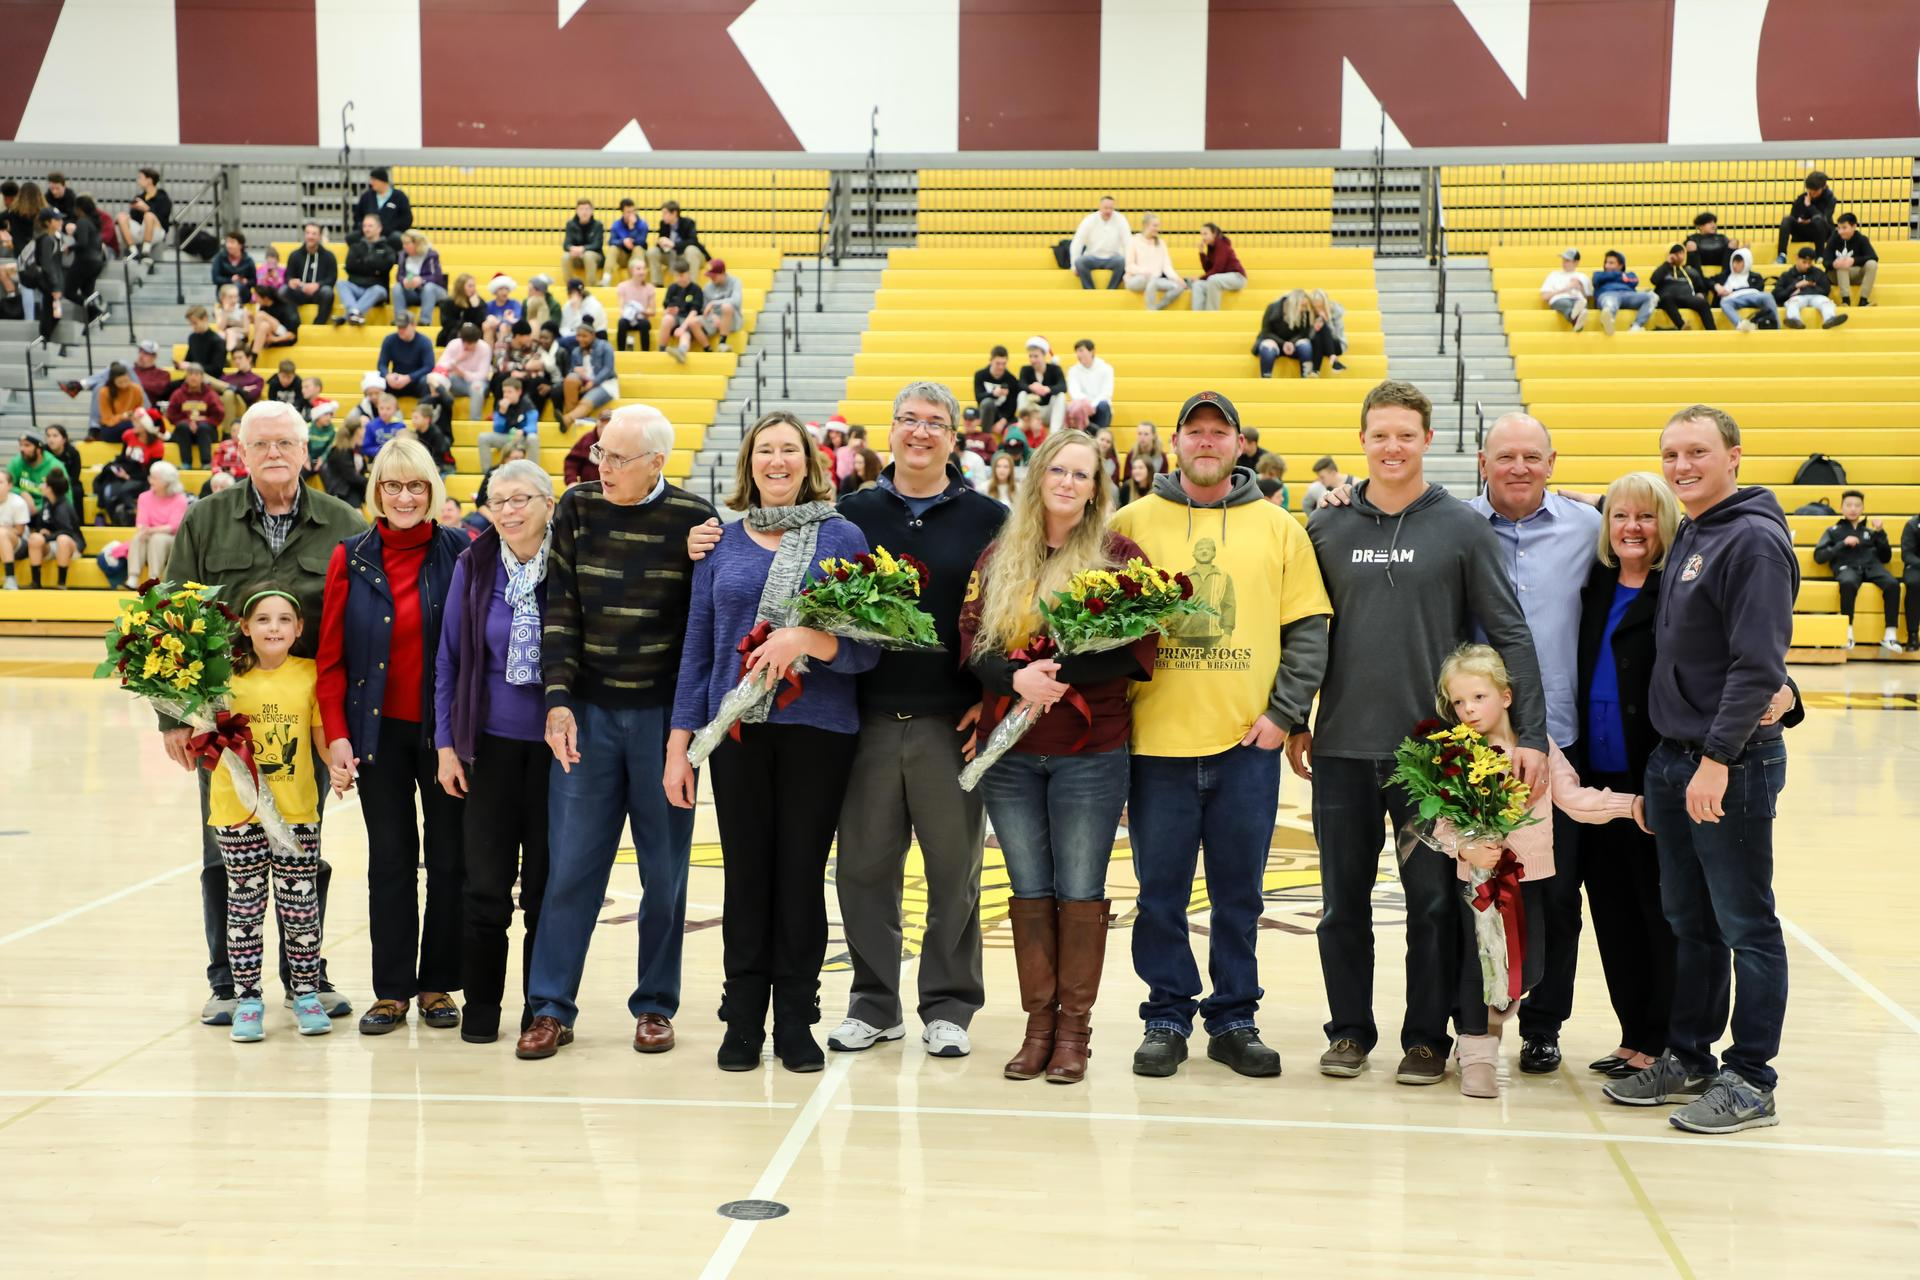 Hall of Fame Inductees standing in gym